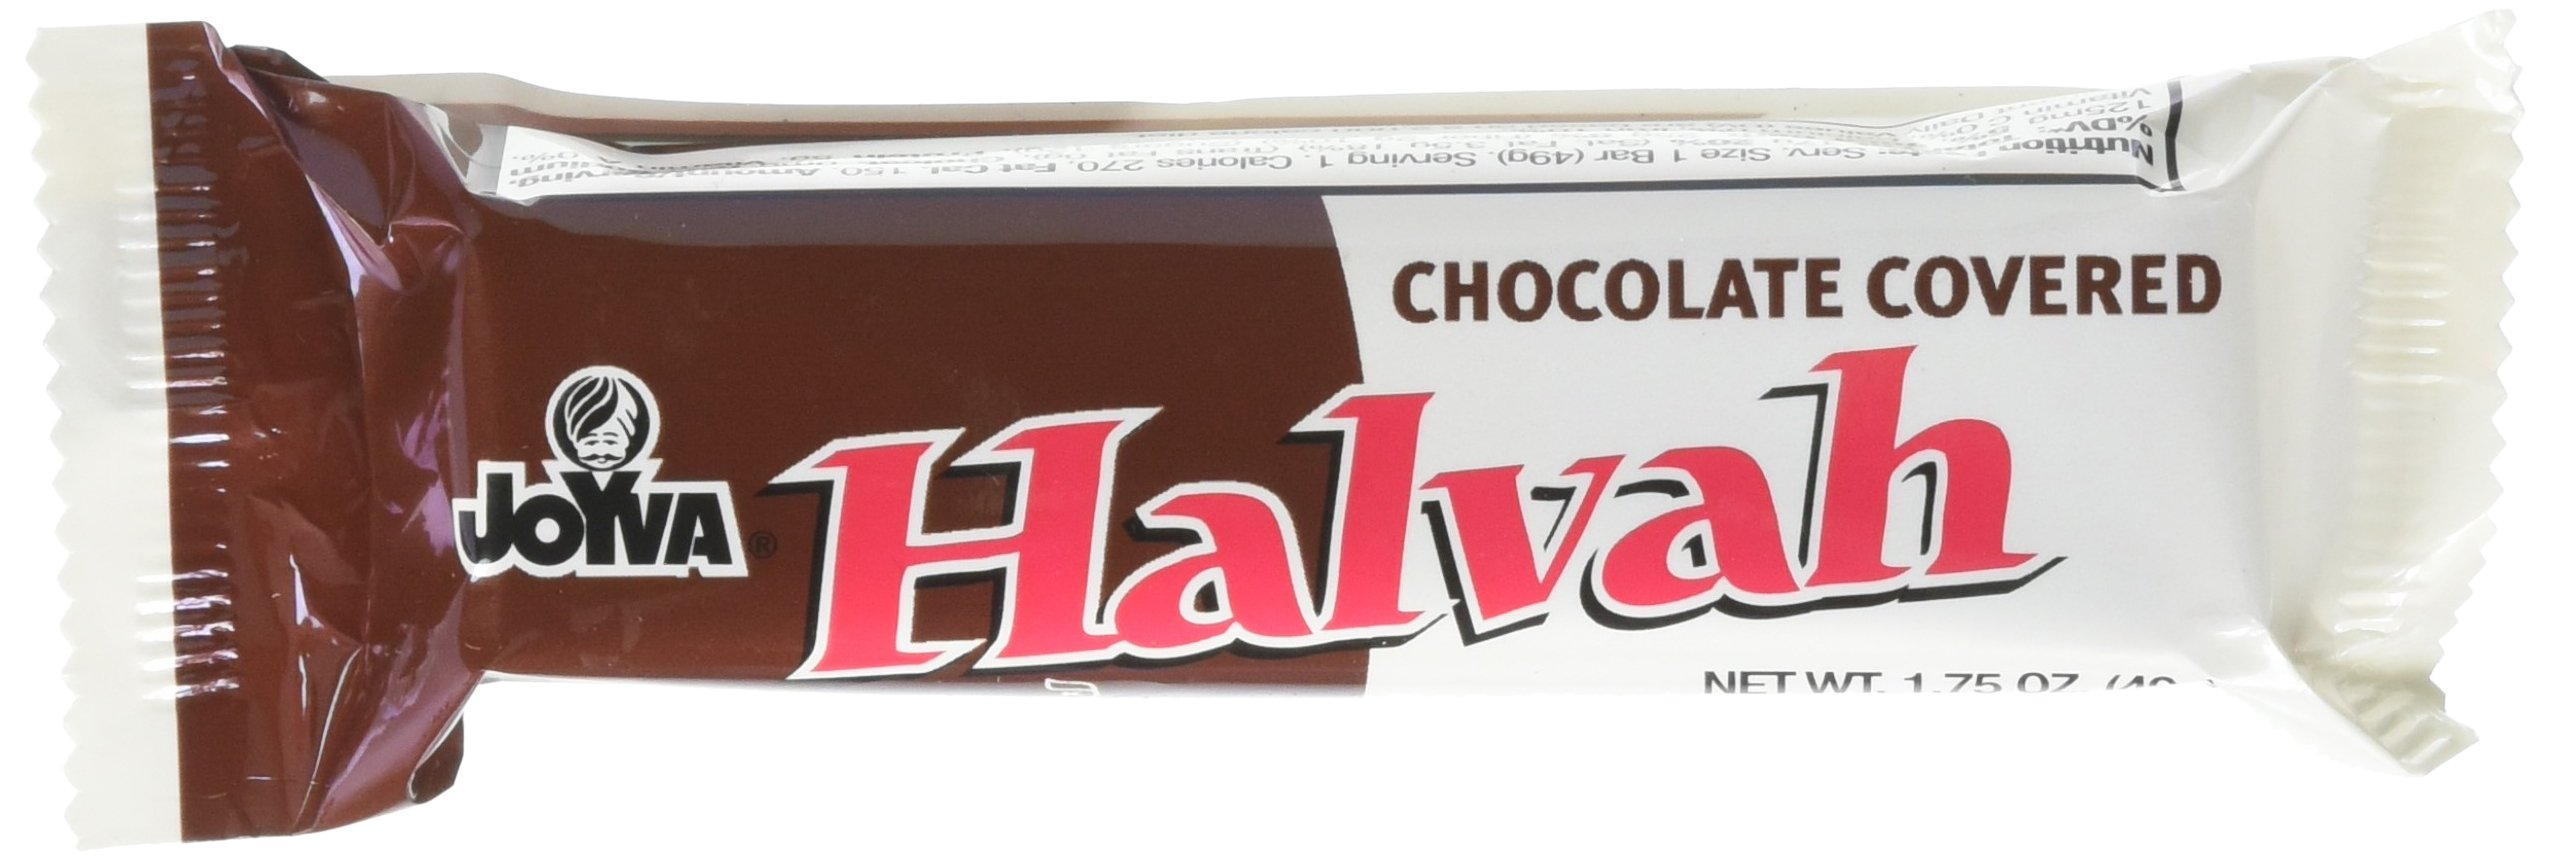 Joyva Chocolate Covered Halvah Bars, 1.75 Ounce,(36 count)